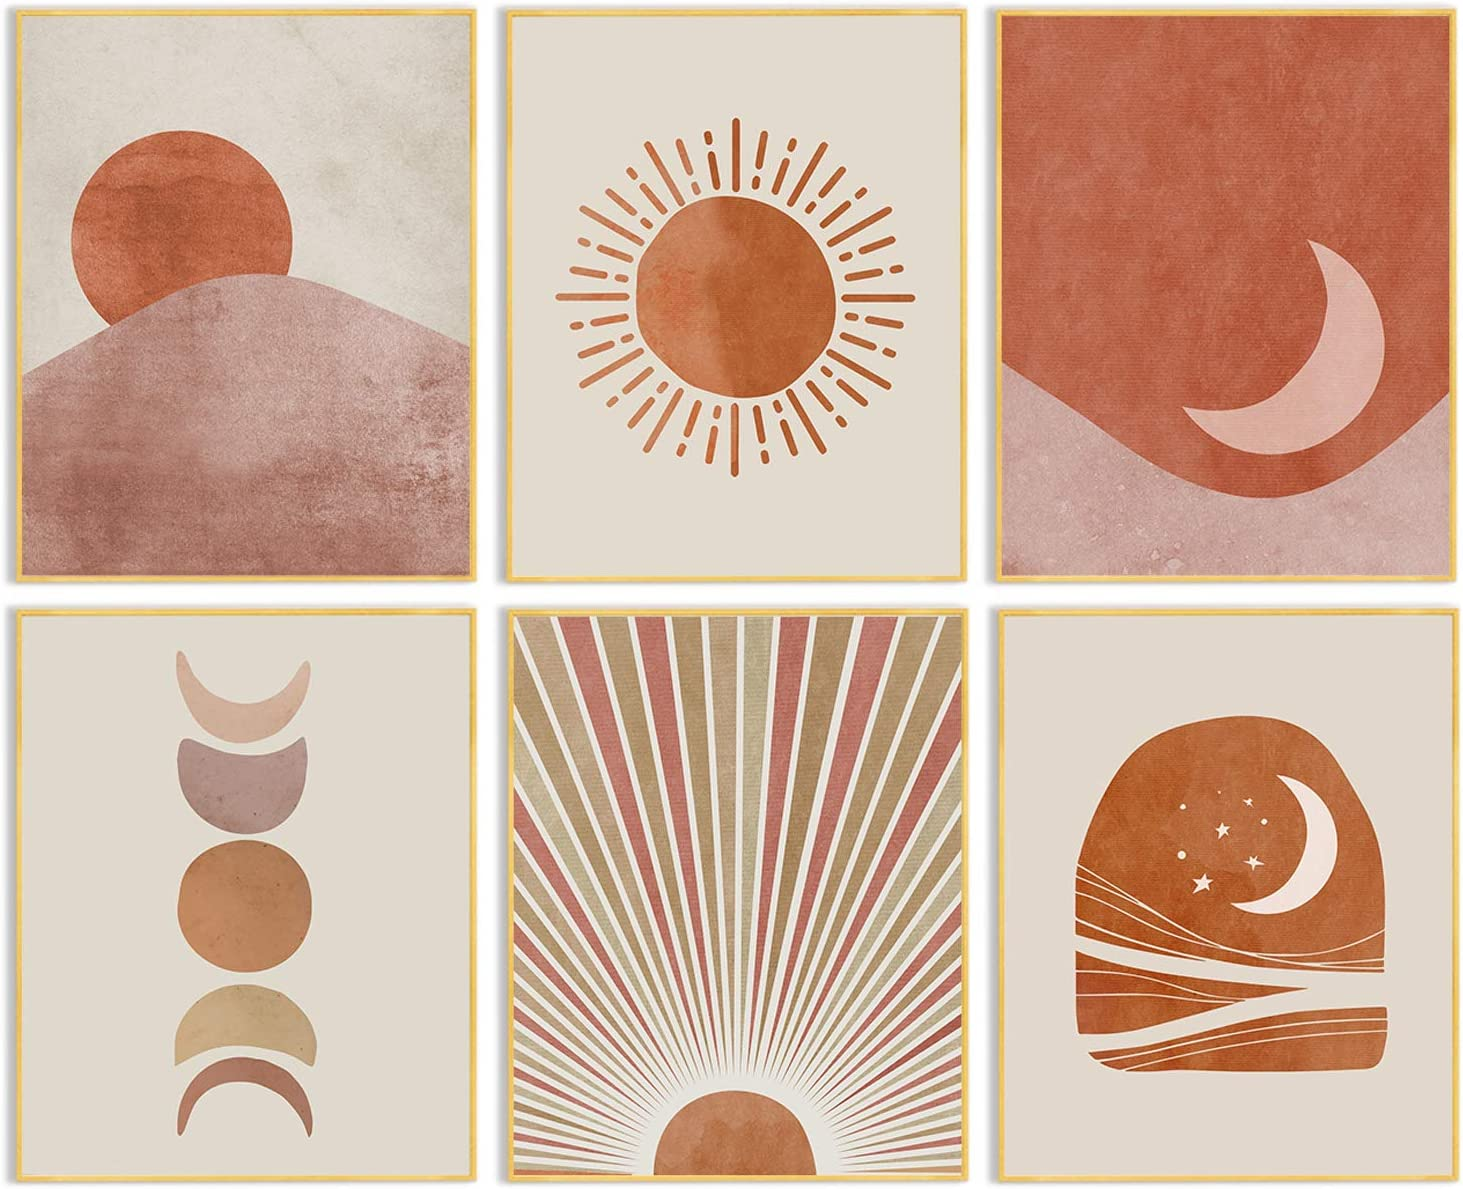 Boho Wall Decor Art Prints - Minimalist Mid Century Modern Abstract Line Artwork Bohemian Pictures Sun Moon Posters Canvas Painting Home Living Room Bedroom Bathroom Decorations 8x10inches Unframed